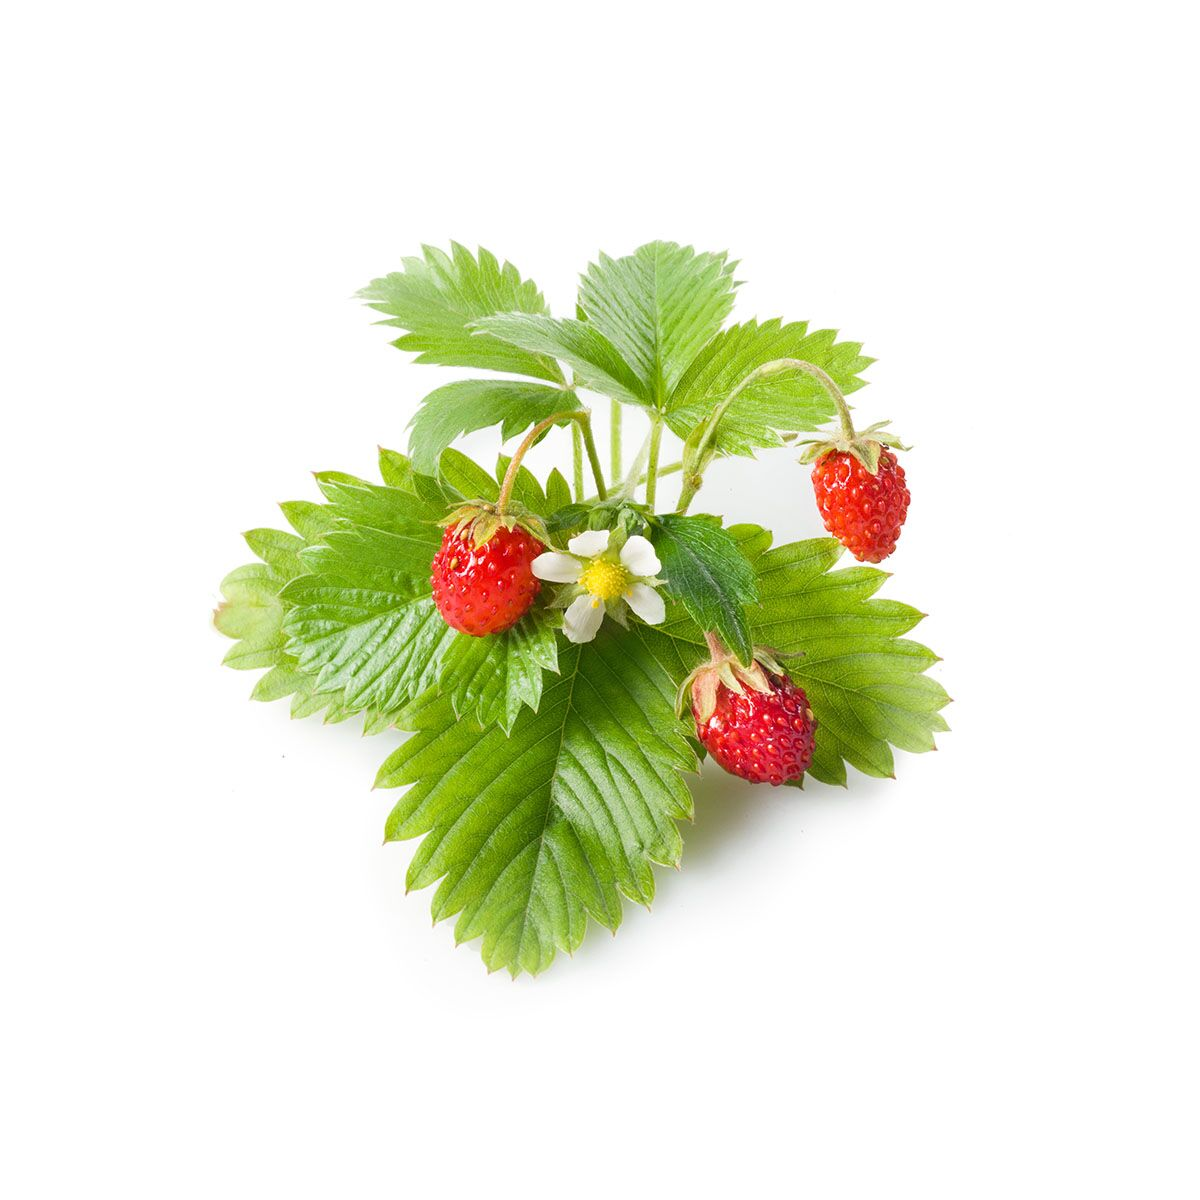 Wild_Strawberry_plant_1200x1200_preview.jpg